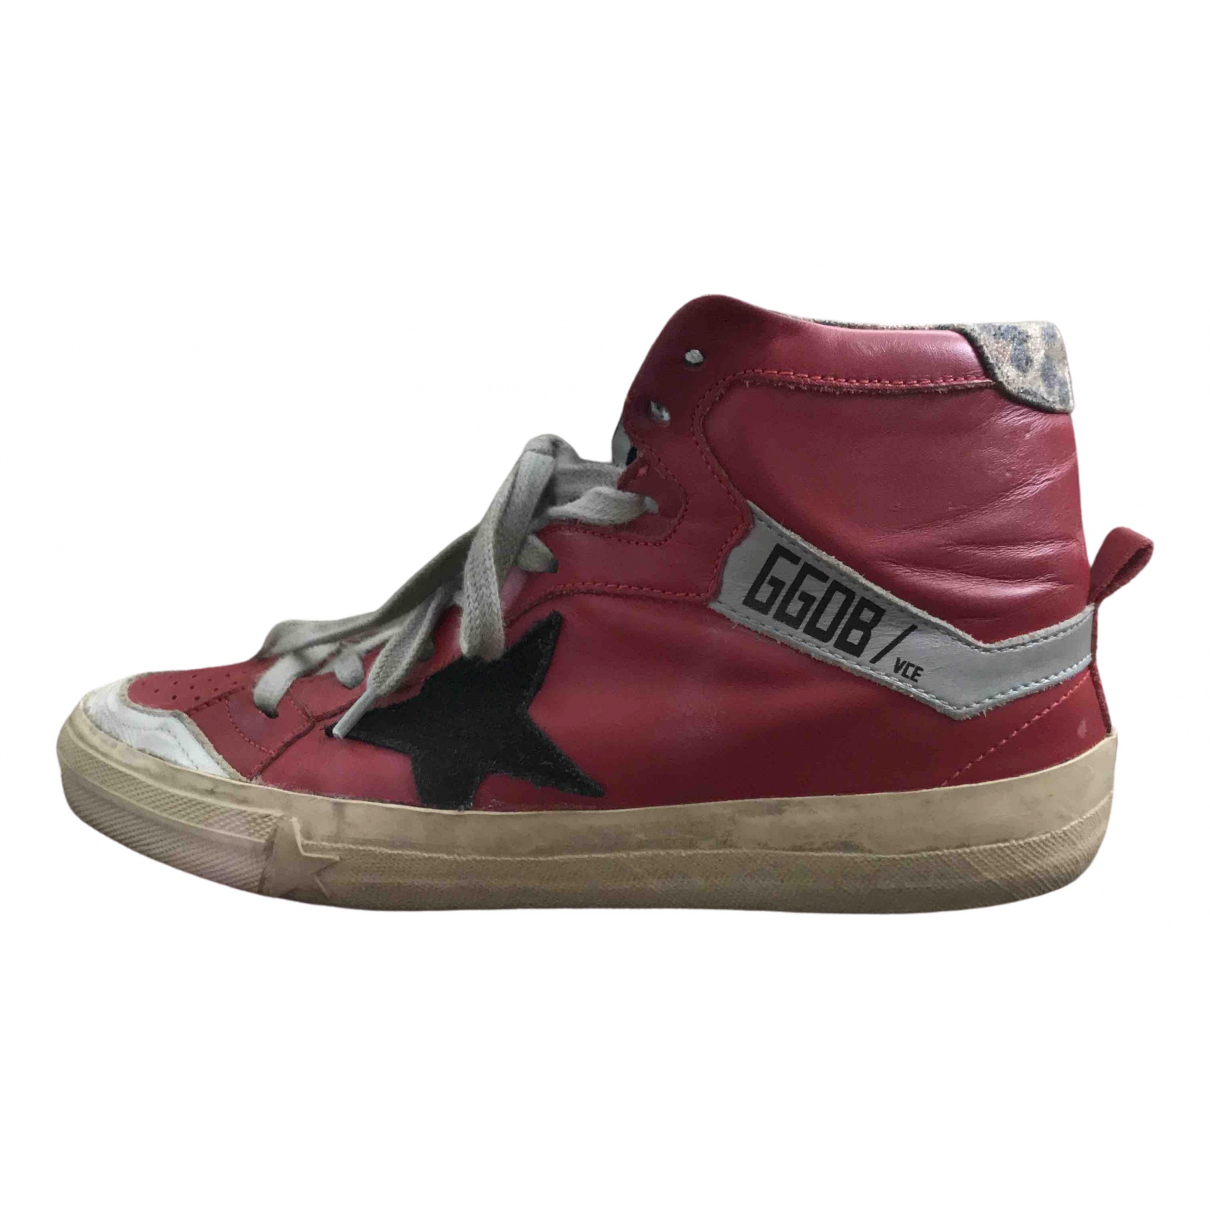 Golden Goose 2.12 Red Patent leather Trainers for Women 37 EU